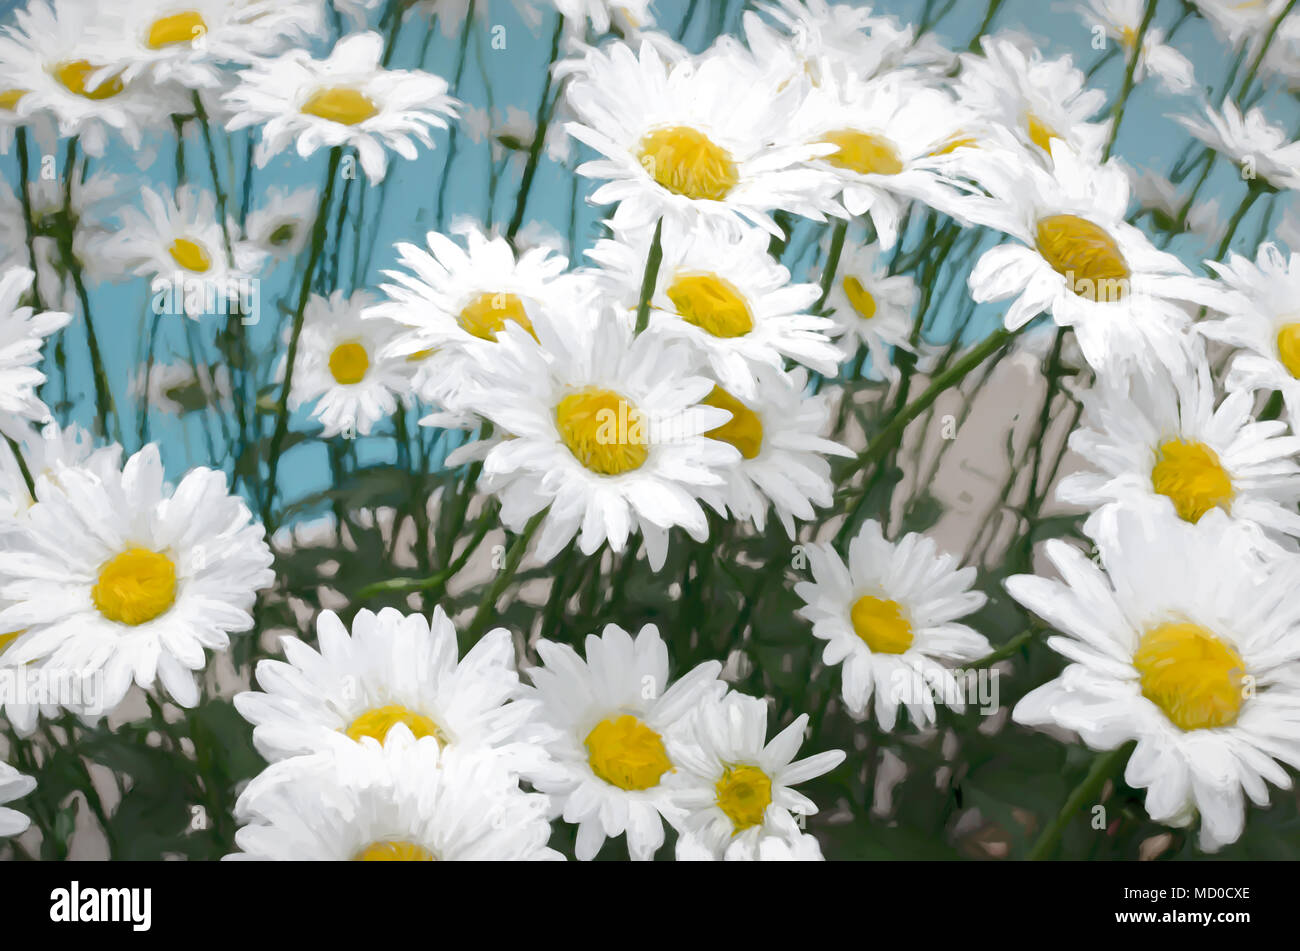 Daisies flowers in painting style stock photo 180104358 alamy daisies flowers in painting style izmirmasajfo